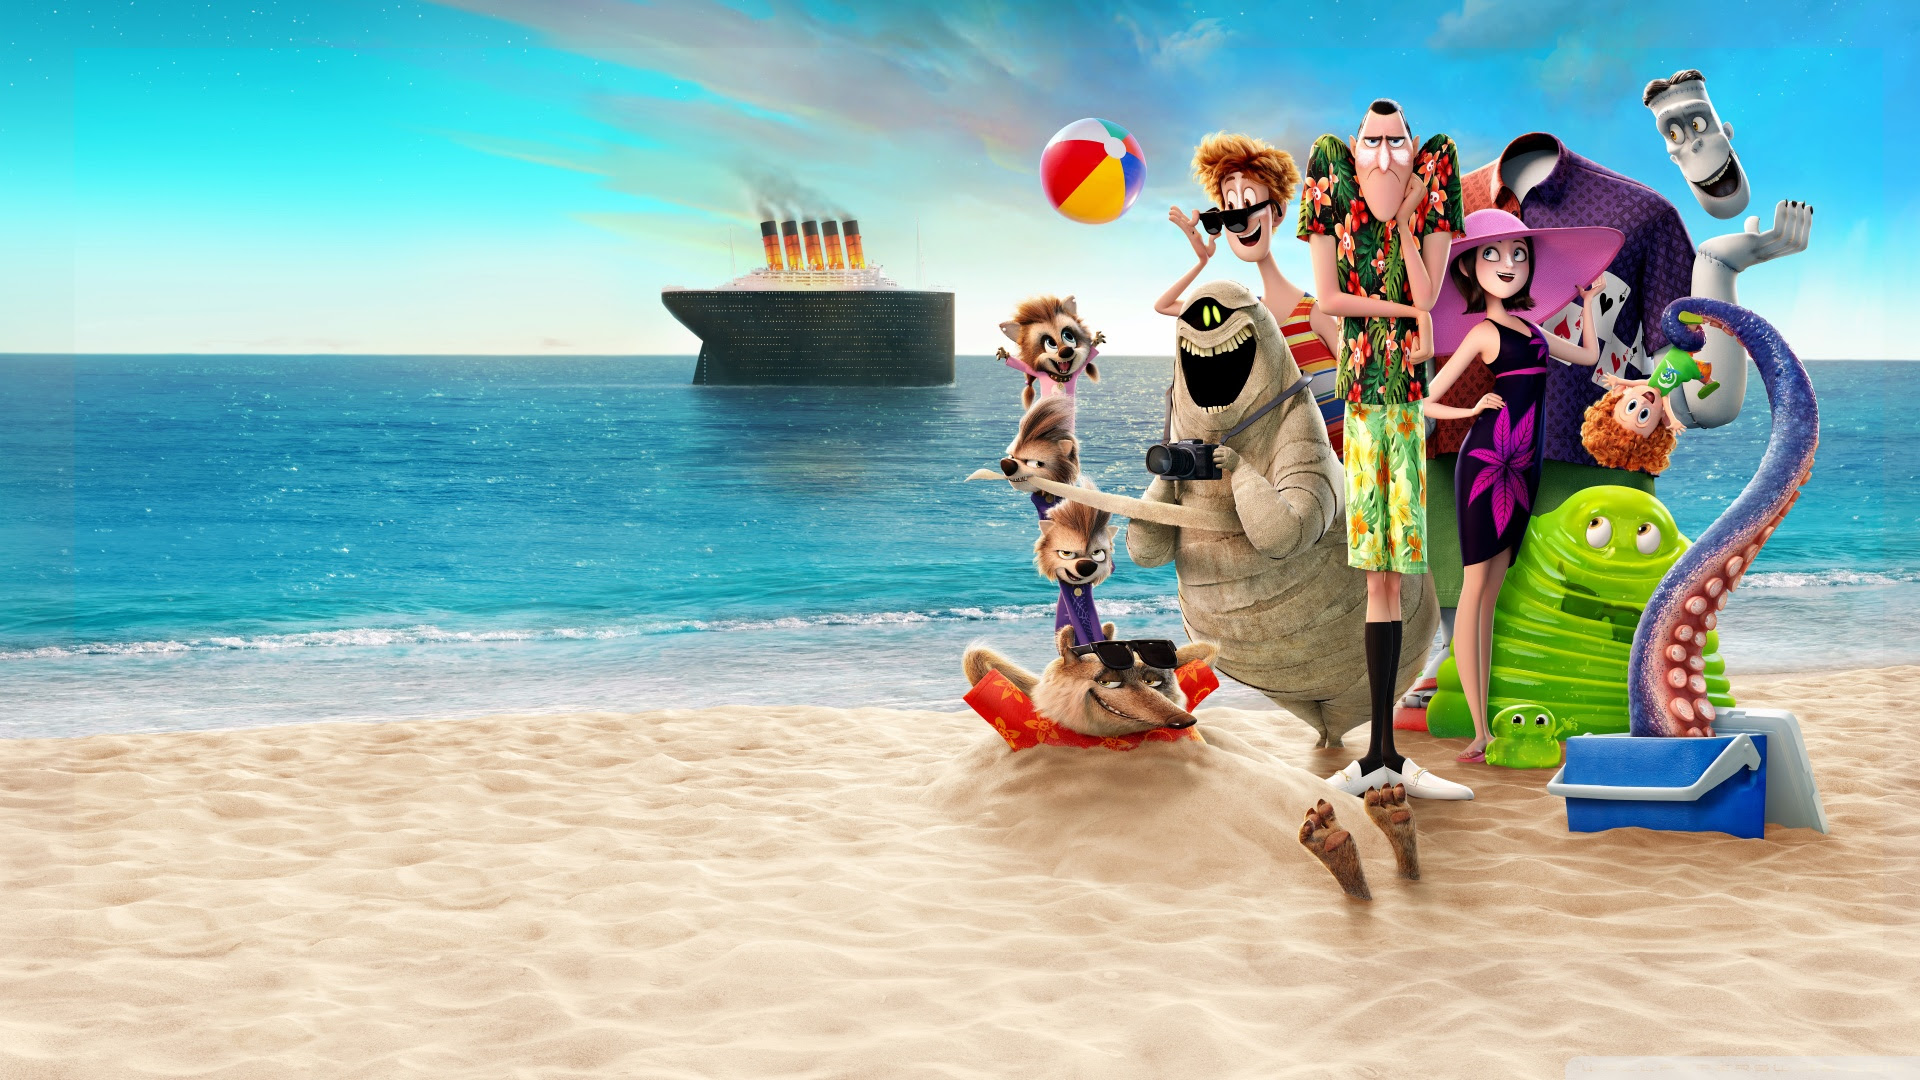 Hotel Transylvania 3 Summer Vacation Review (2018) | Just ...